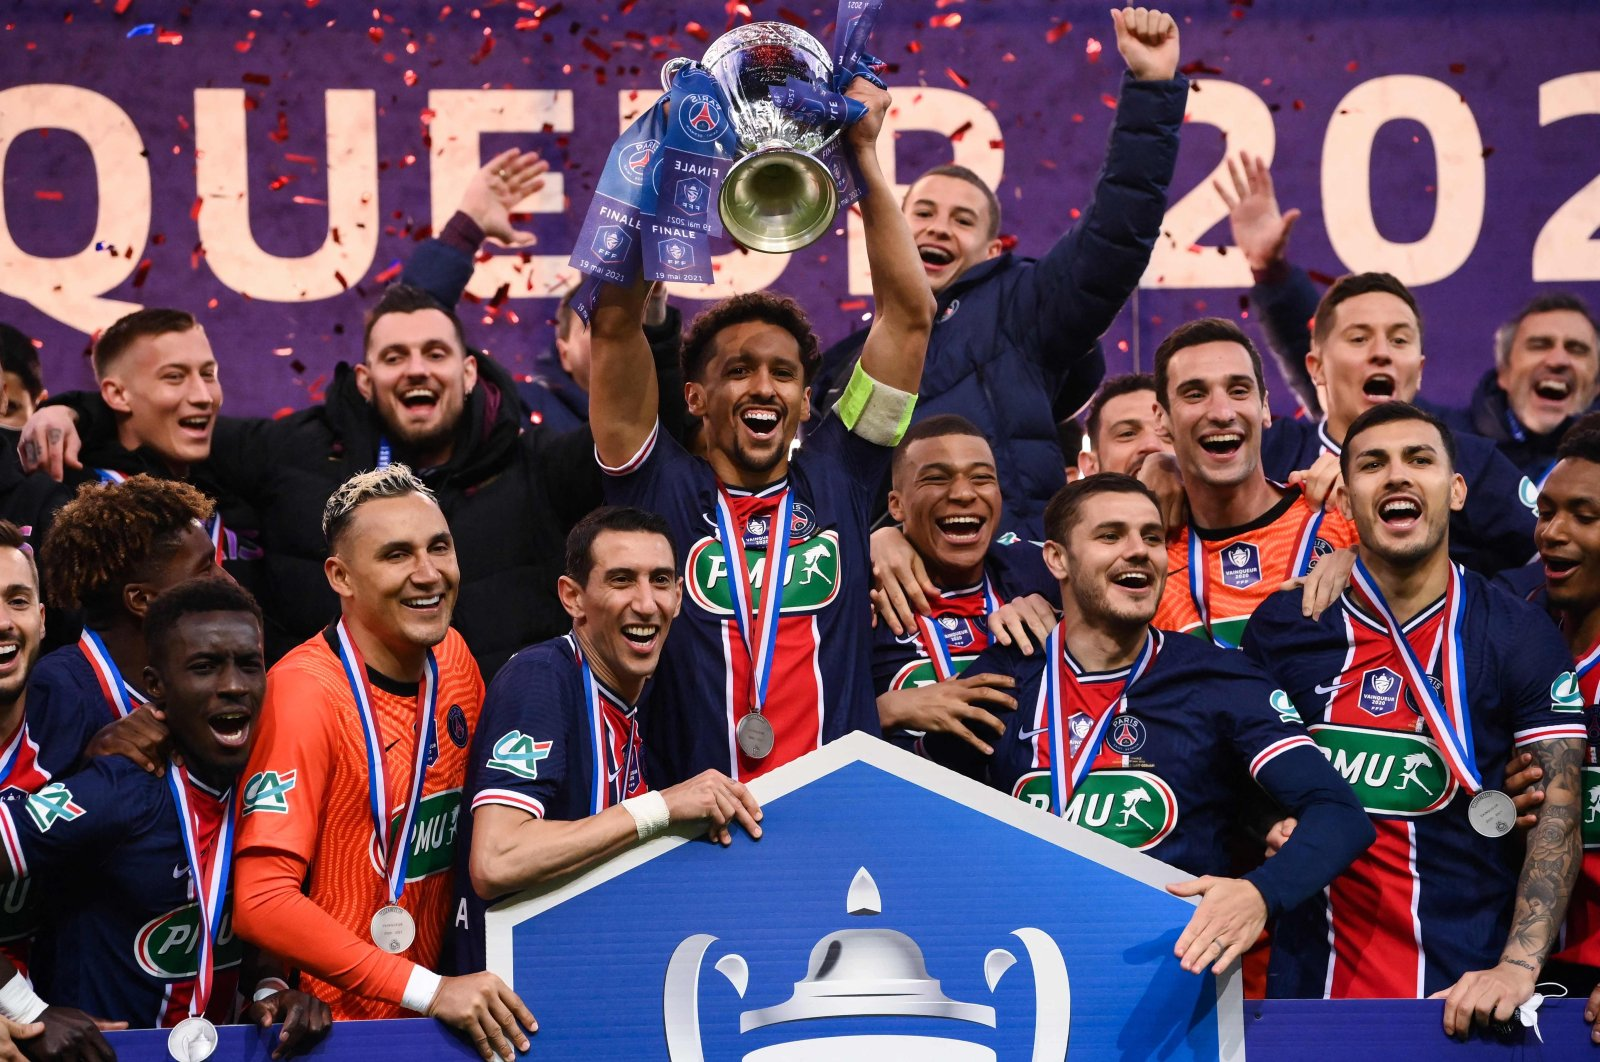 Paris Saint-Germain players celebrate with French Cup after winning the final against Monaco at the Stade de France stadium, Paris, France, May 19, 2021. (AFP Photo)